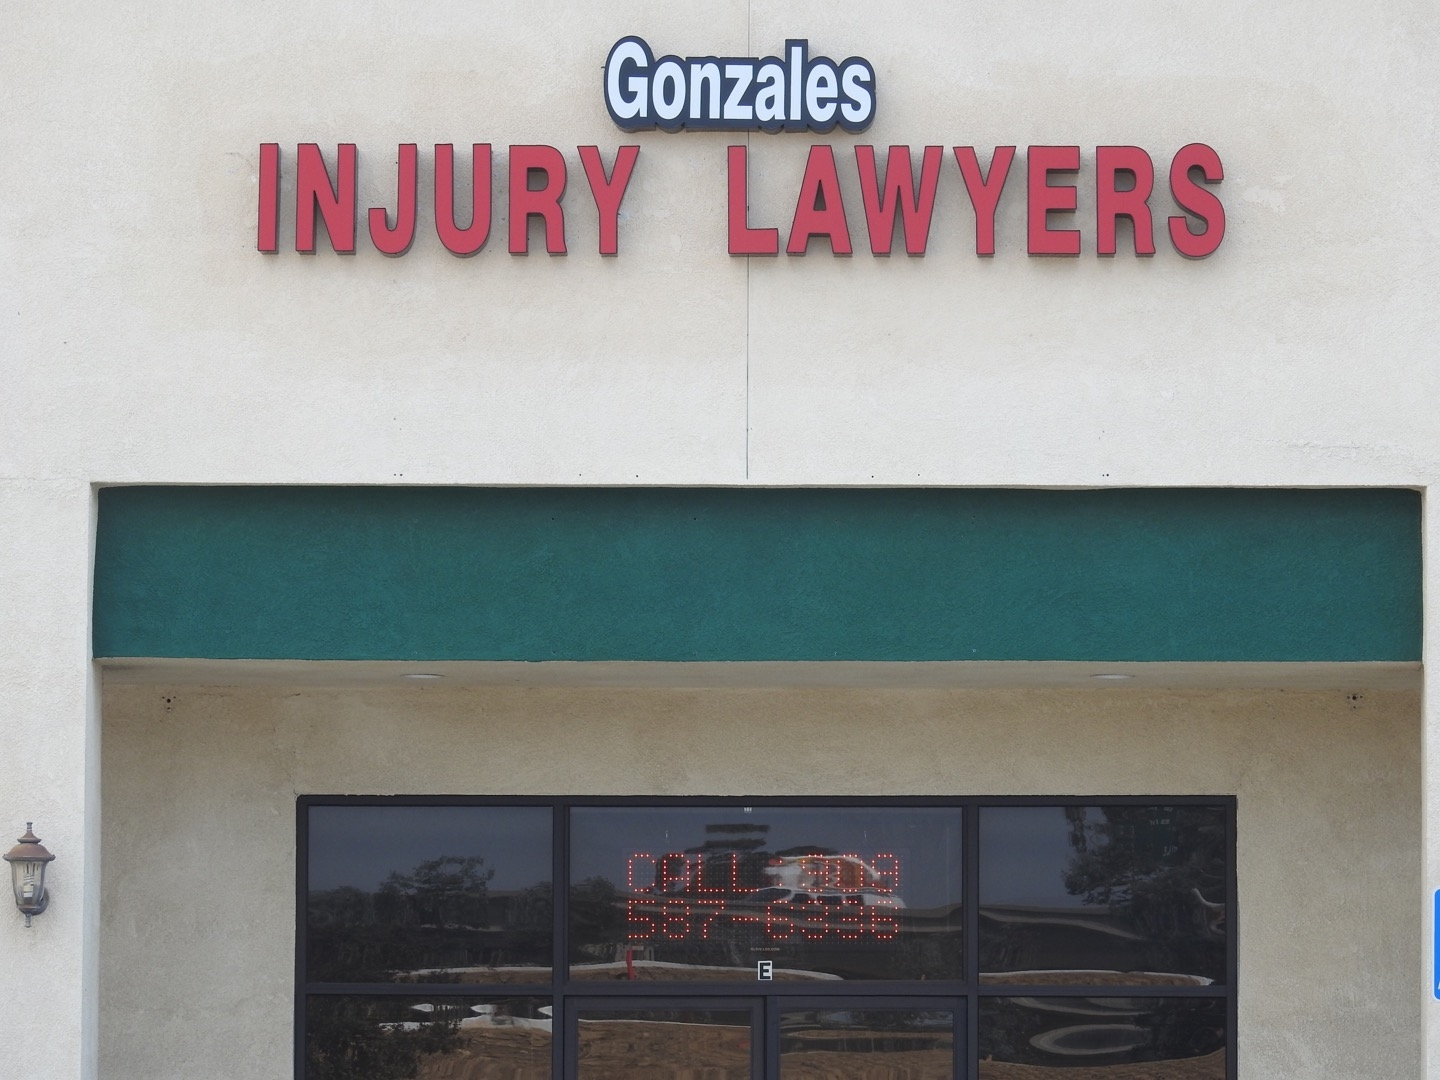 Gonzales law offices image 3